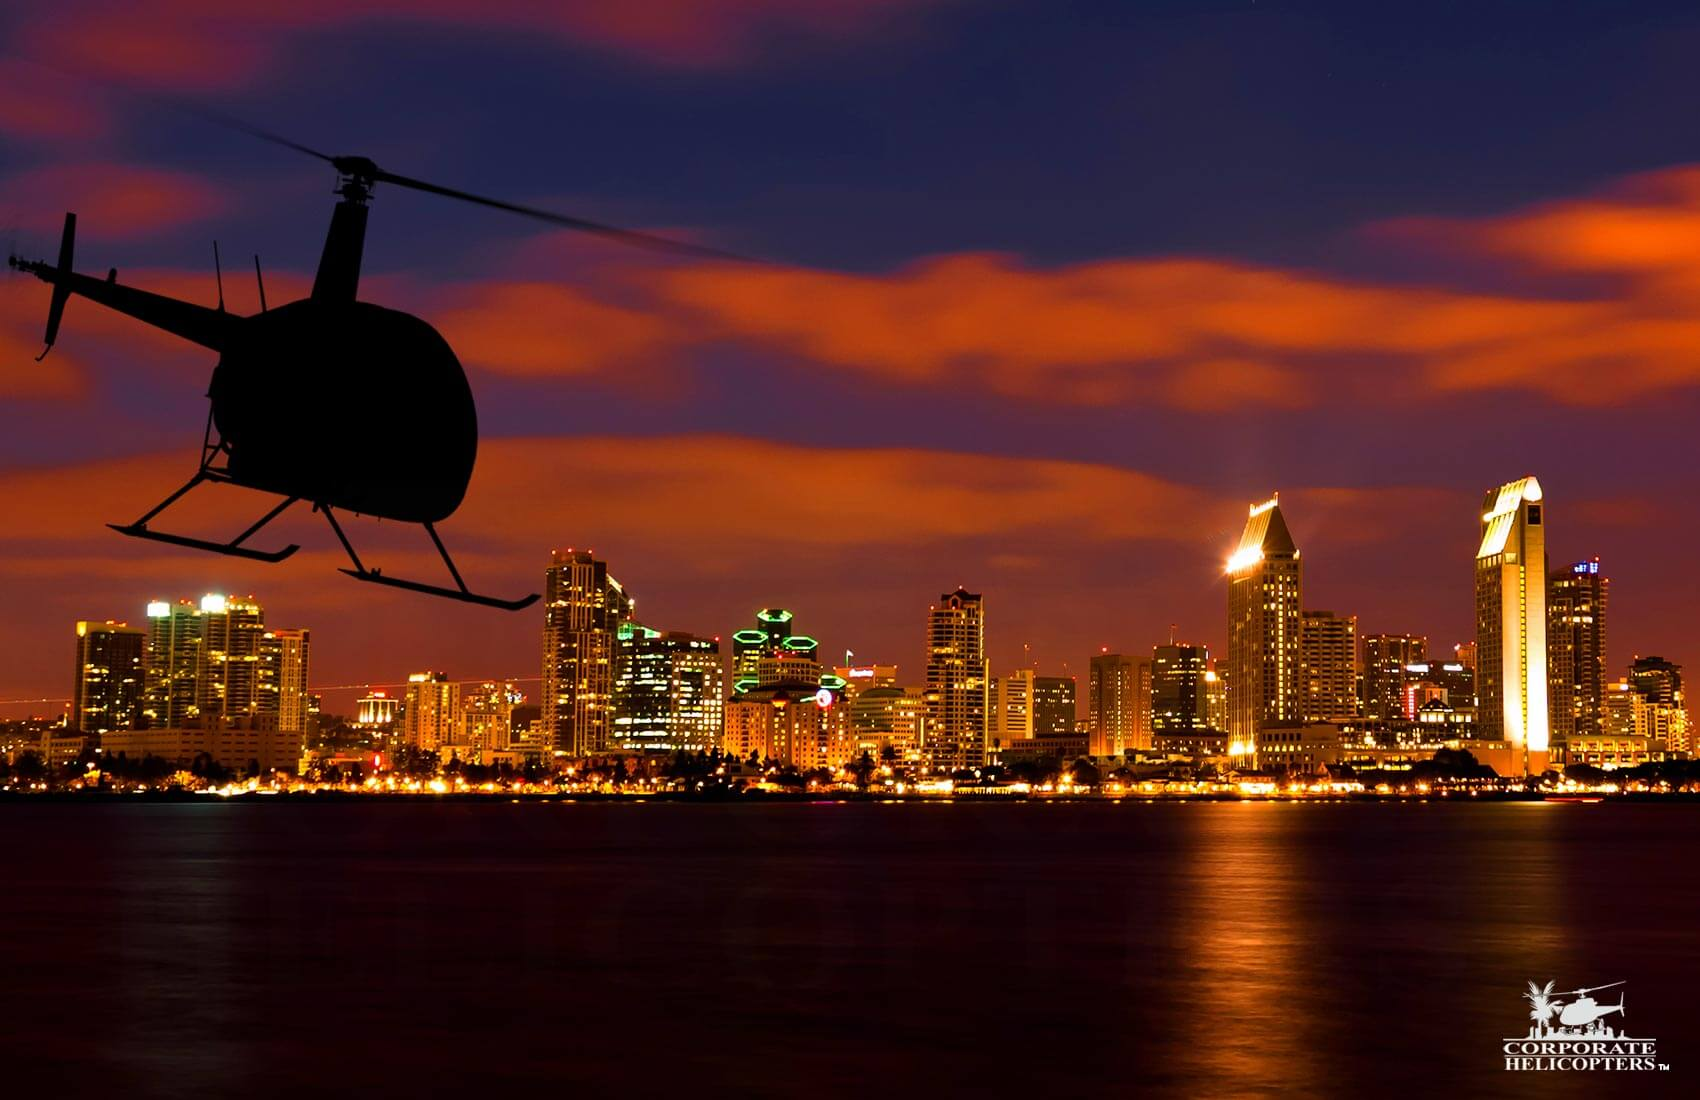 San Diego City Lights Helicopter Tour. A night time helicopter tour of San Diego featuring the holiday lights.